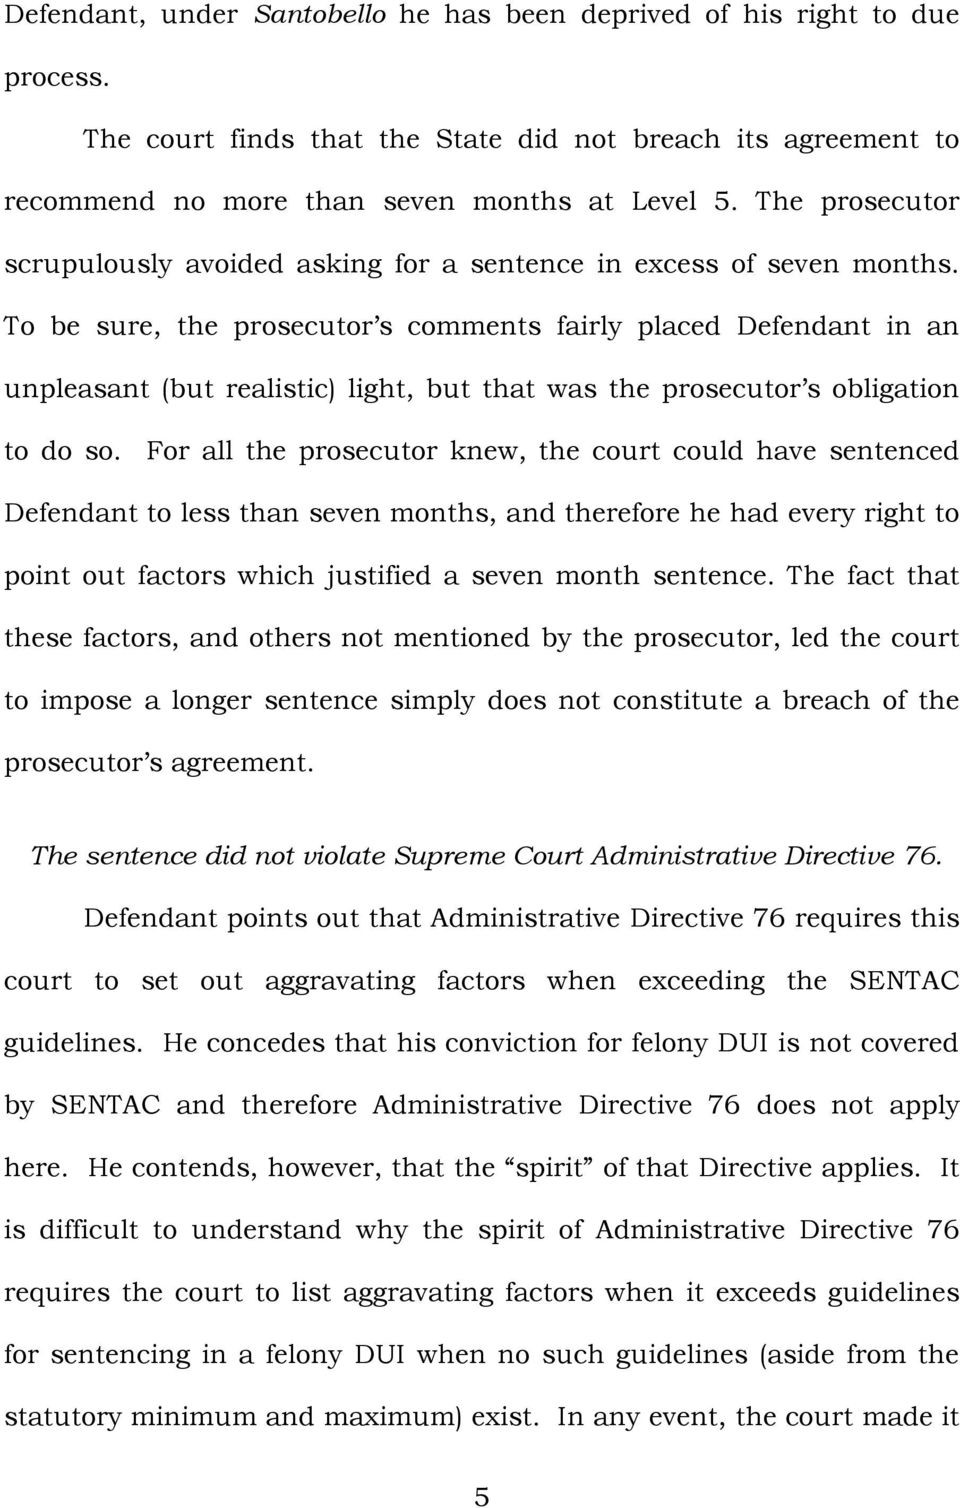 To be sure, the prosecutor s comments fairly placed Defendant in an unpleasant (but realistic light, but that was the prosecutor s obligation to do so.